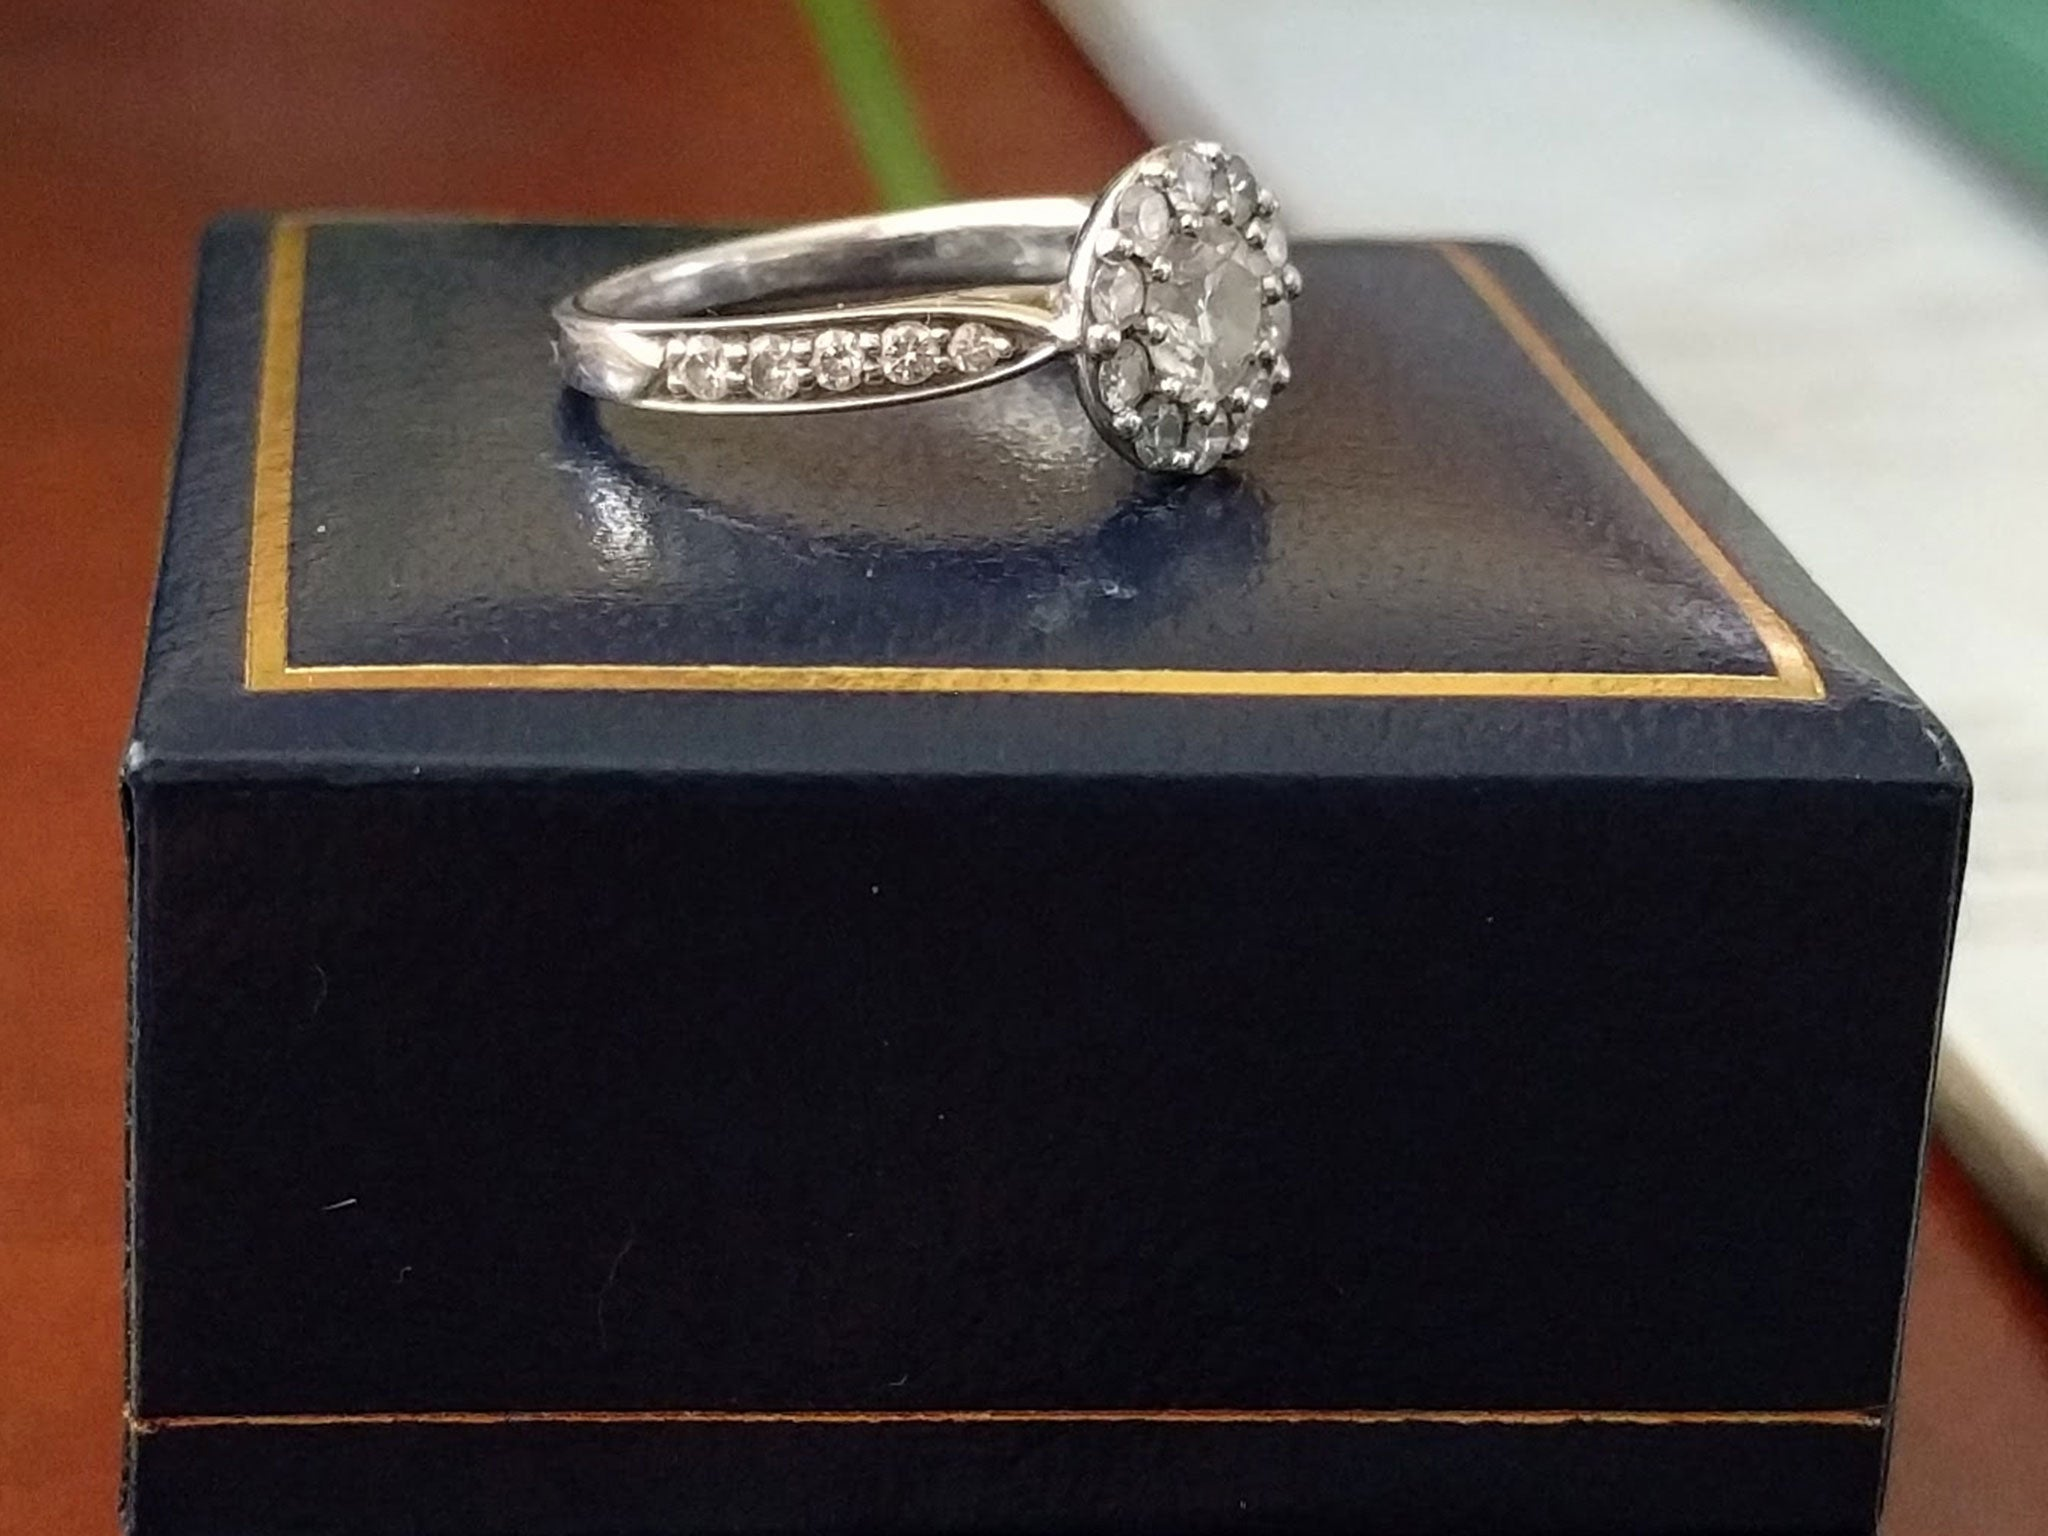 Man gives away ex-fiancée's engagement ring on Reddit | The Independent